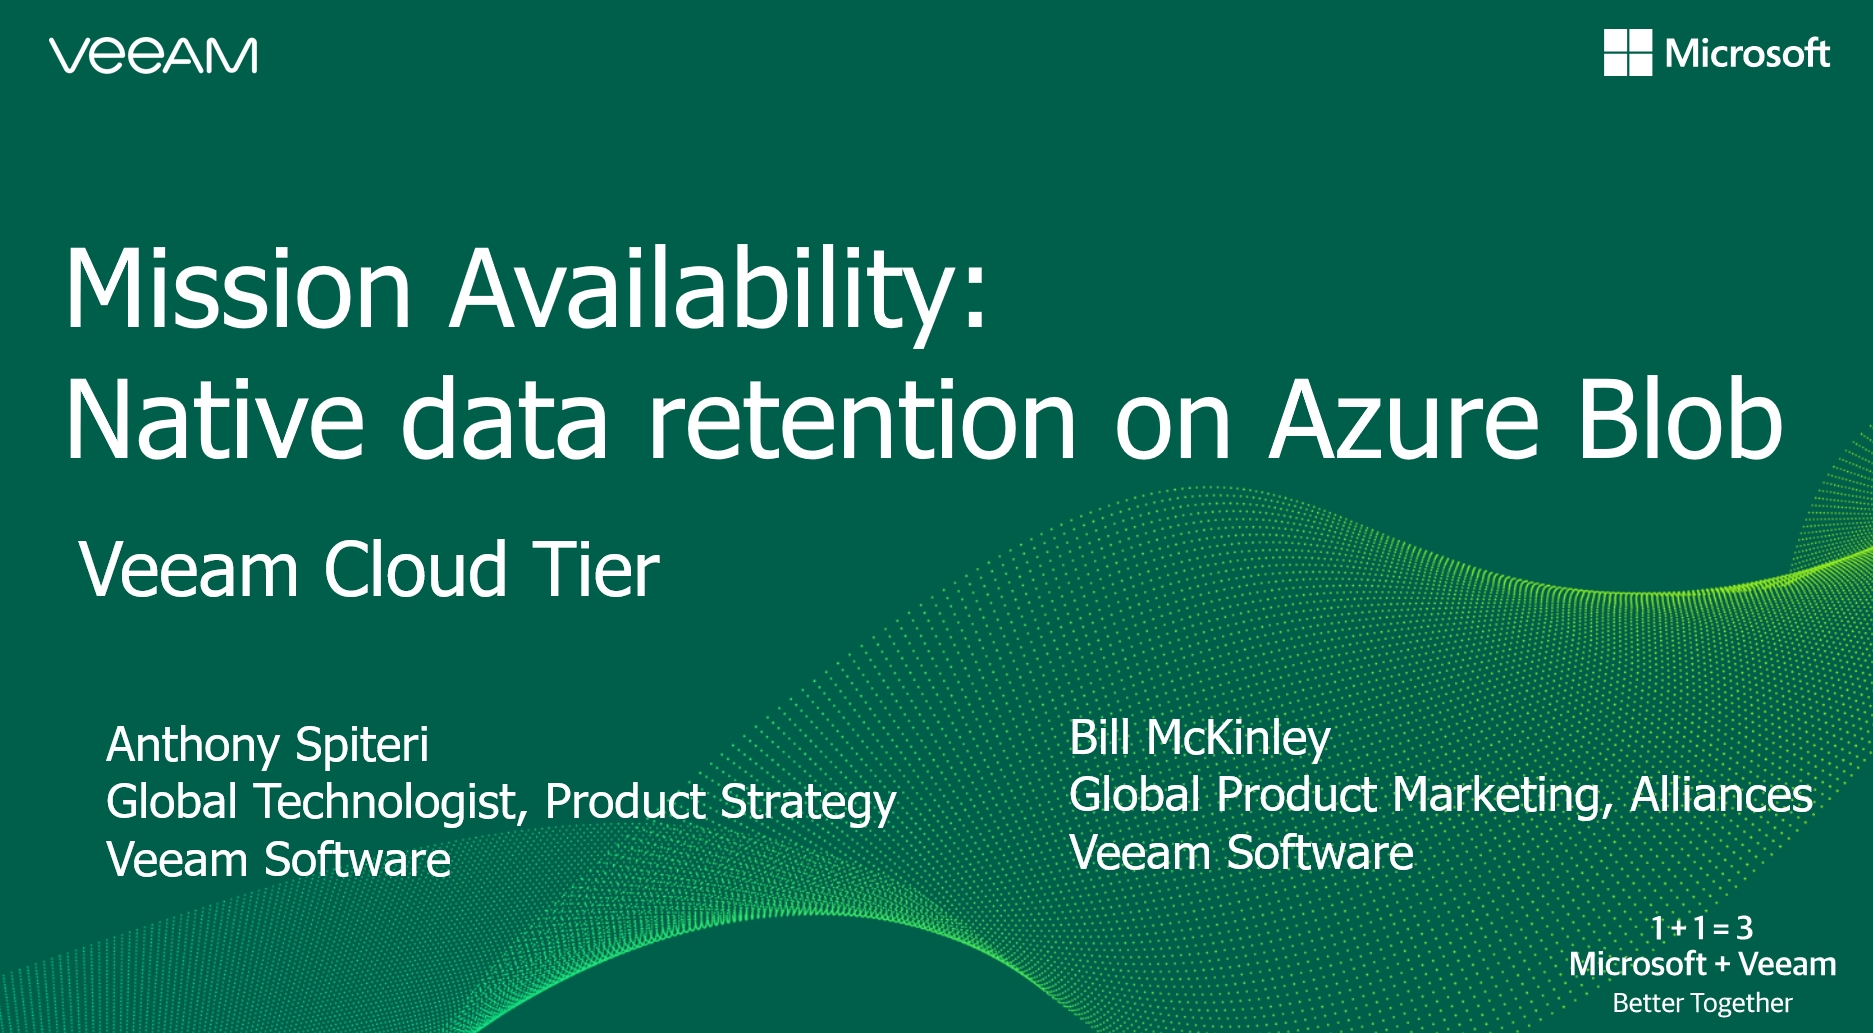 Mission Availability: Native data retention on Azure Blob